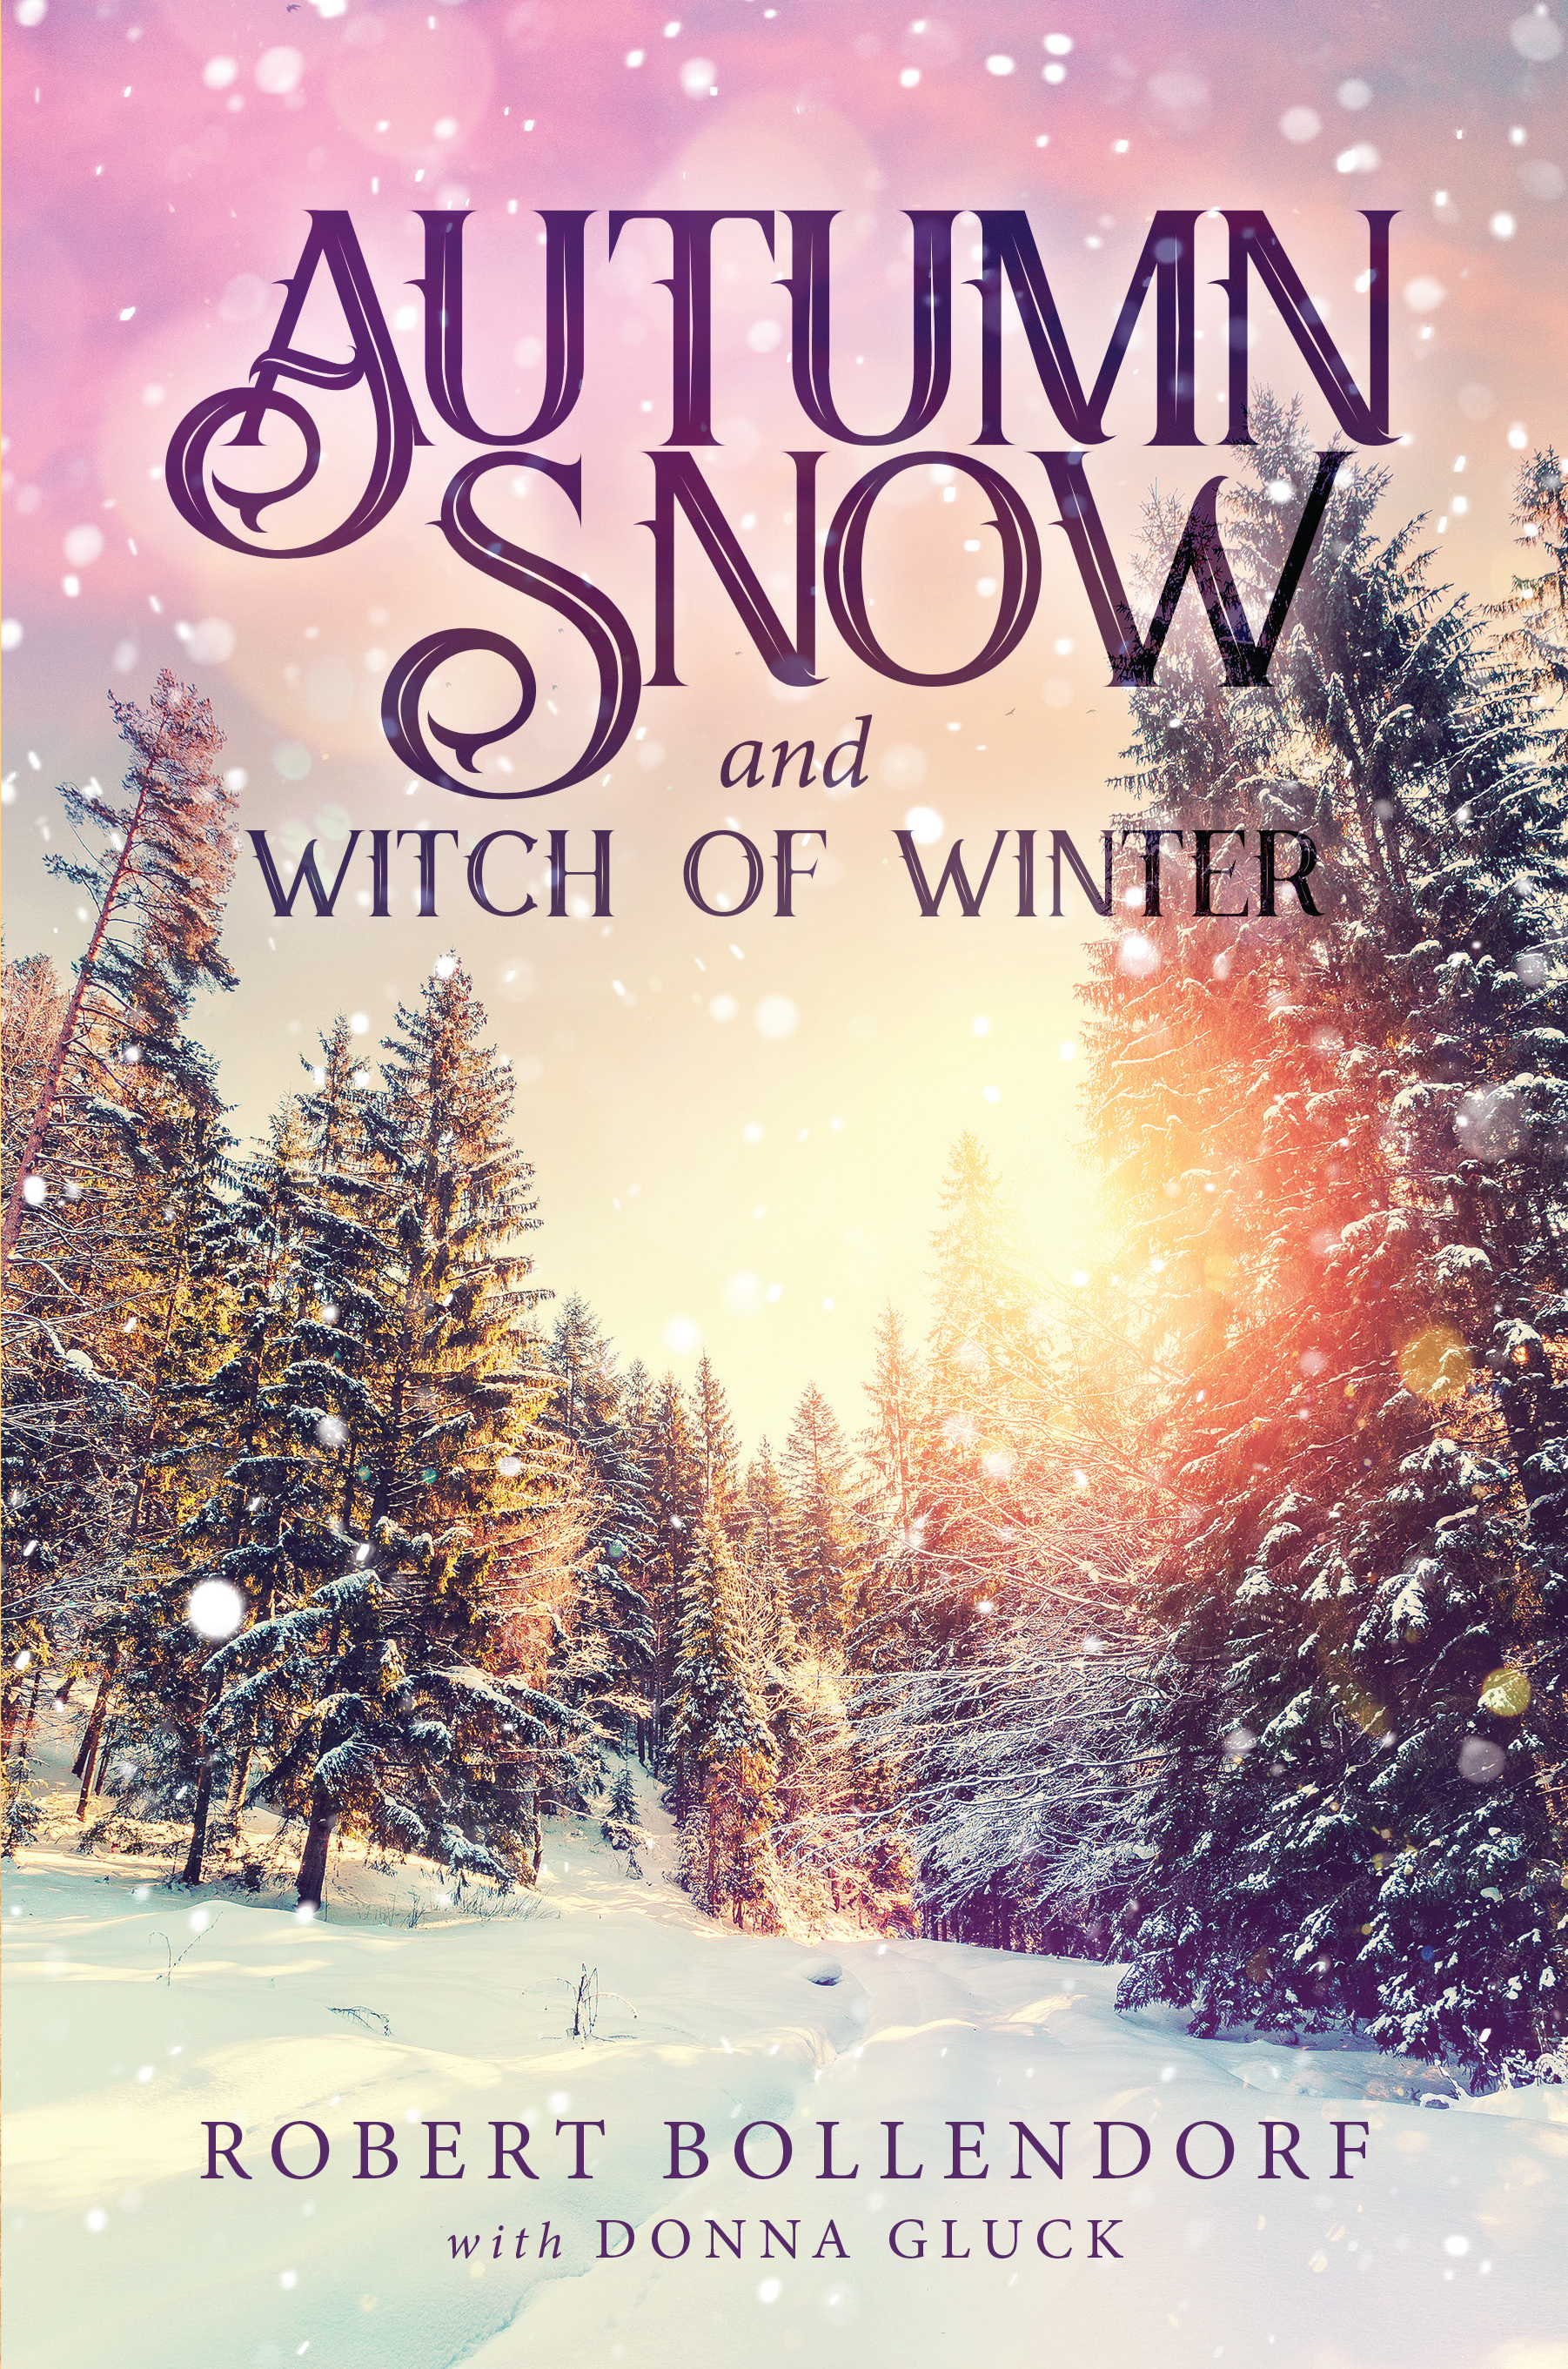 Autumn Snow and Witch of Winter by Authors Robert Bollendorf and Donna Gluck